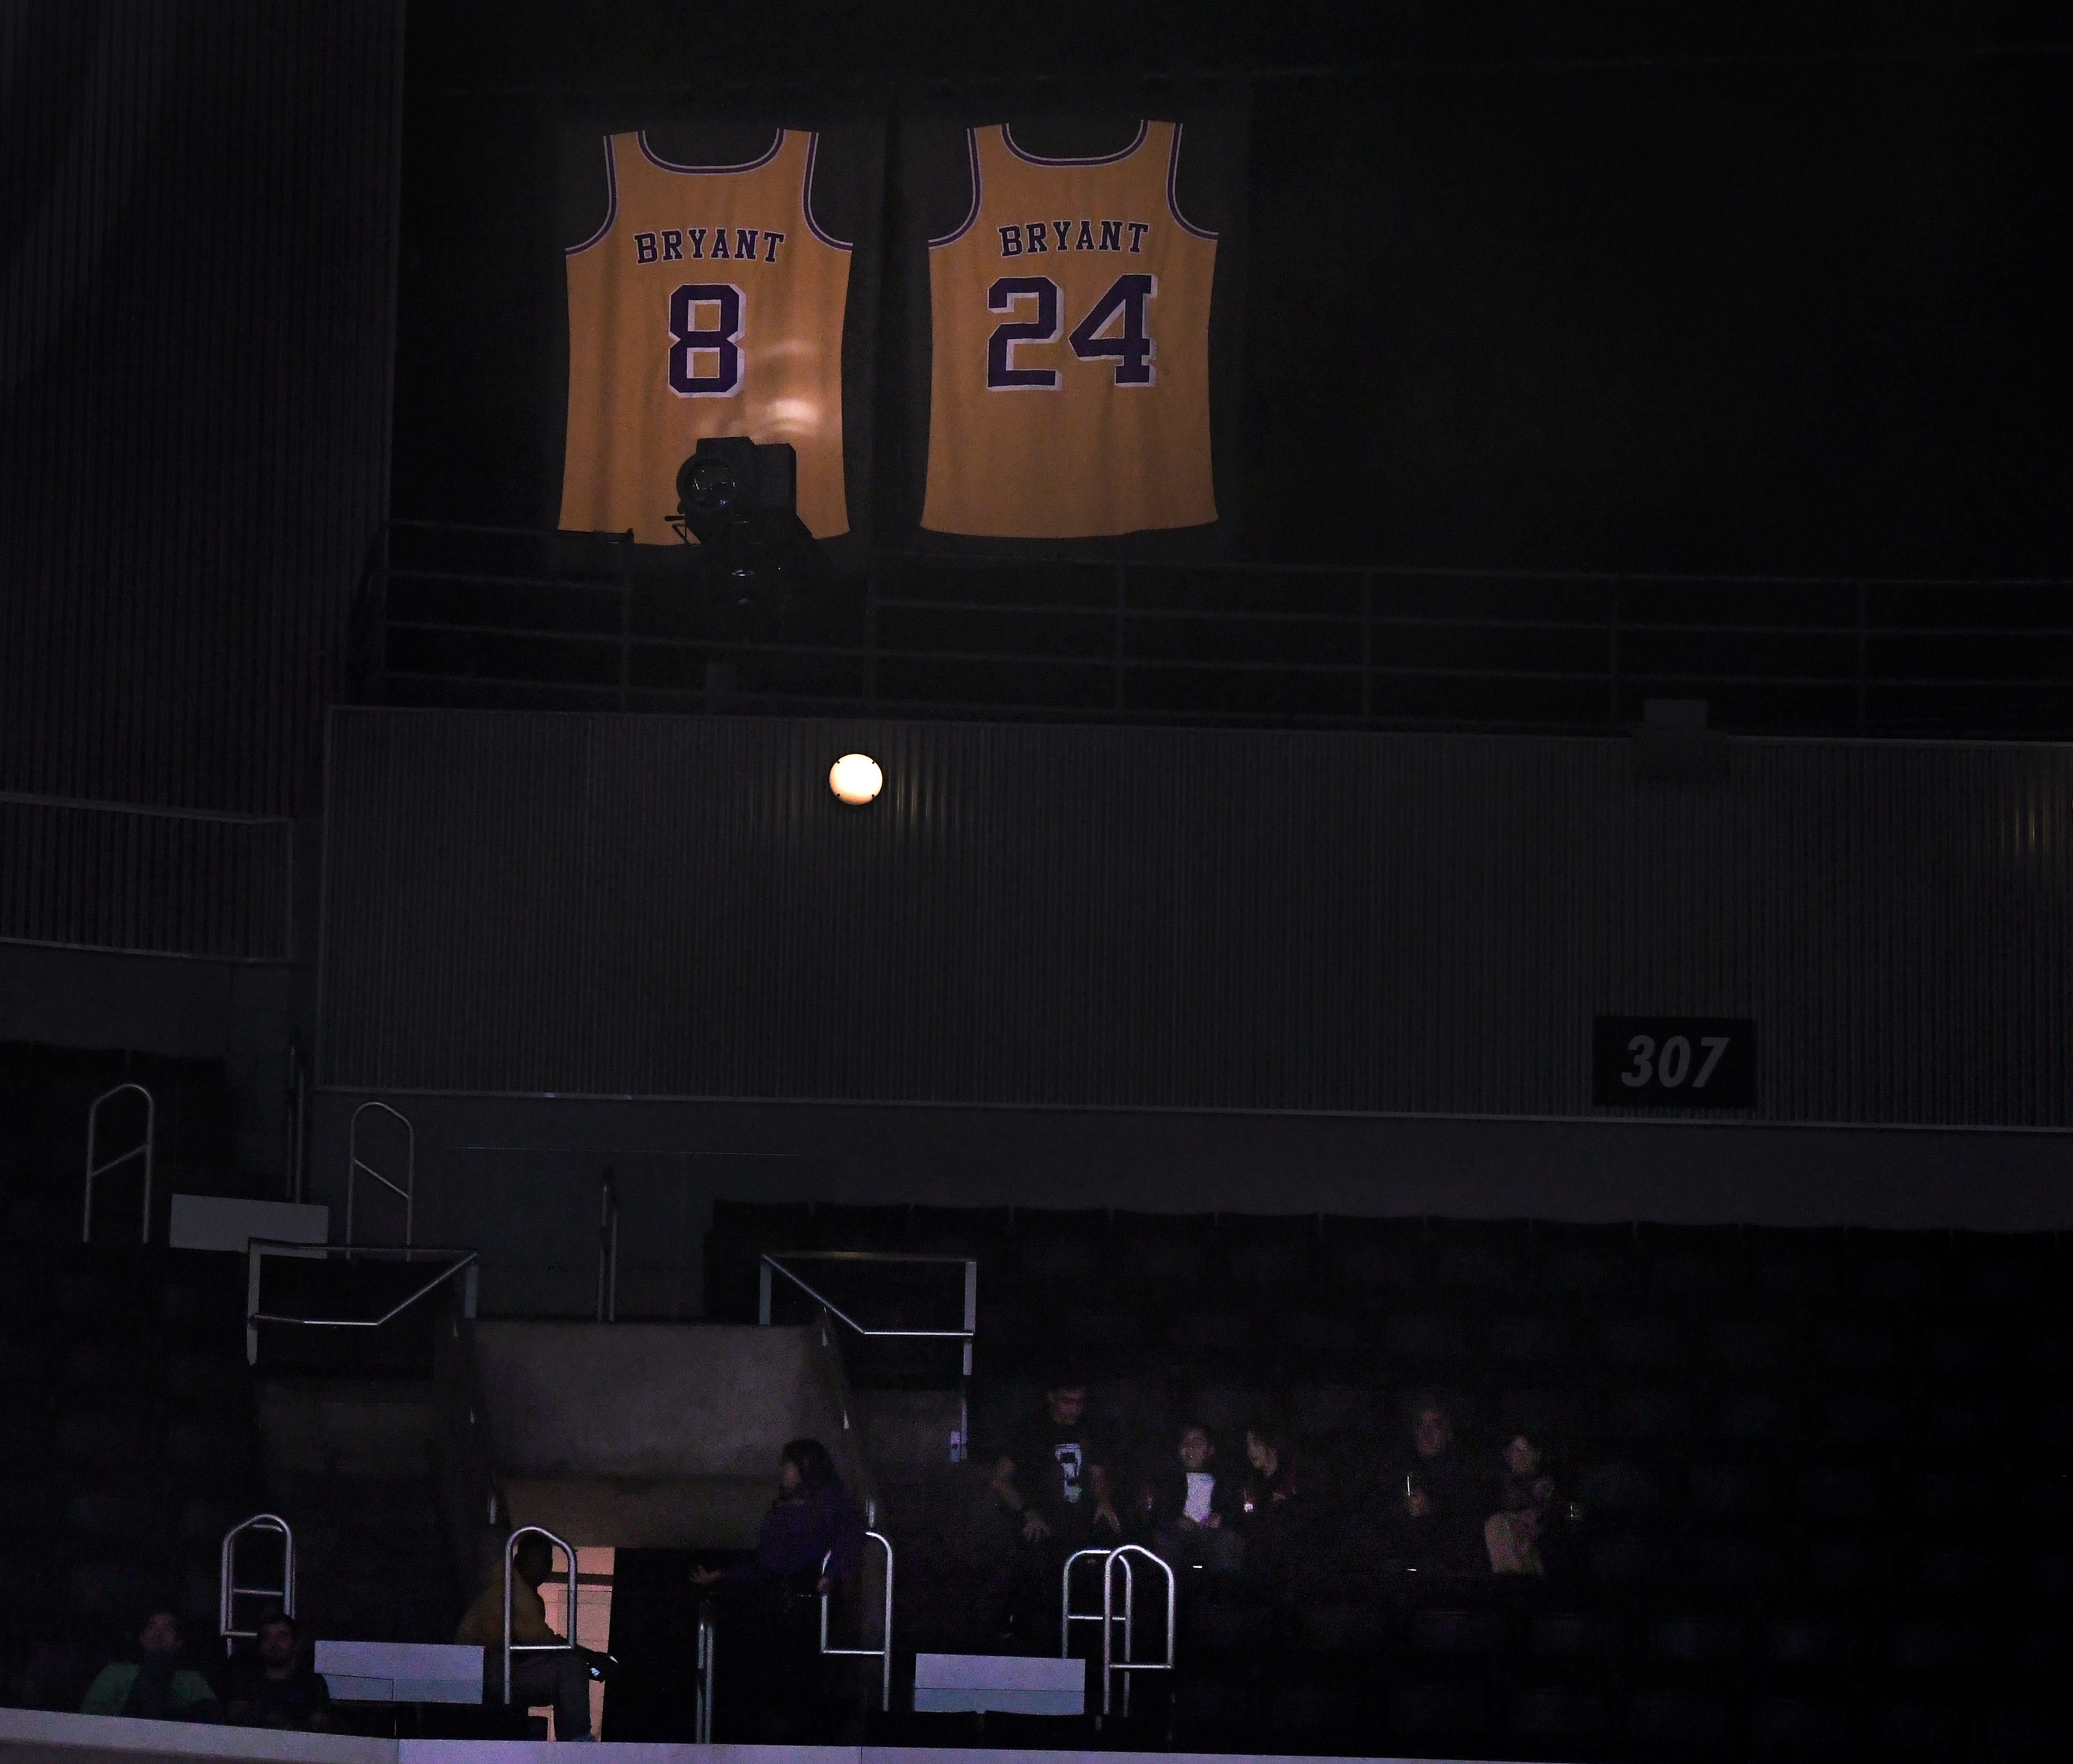 Clippers keep light on Kobe Bryant at Staples Center as tribute